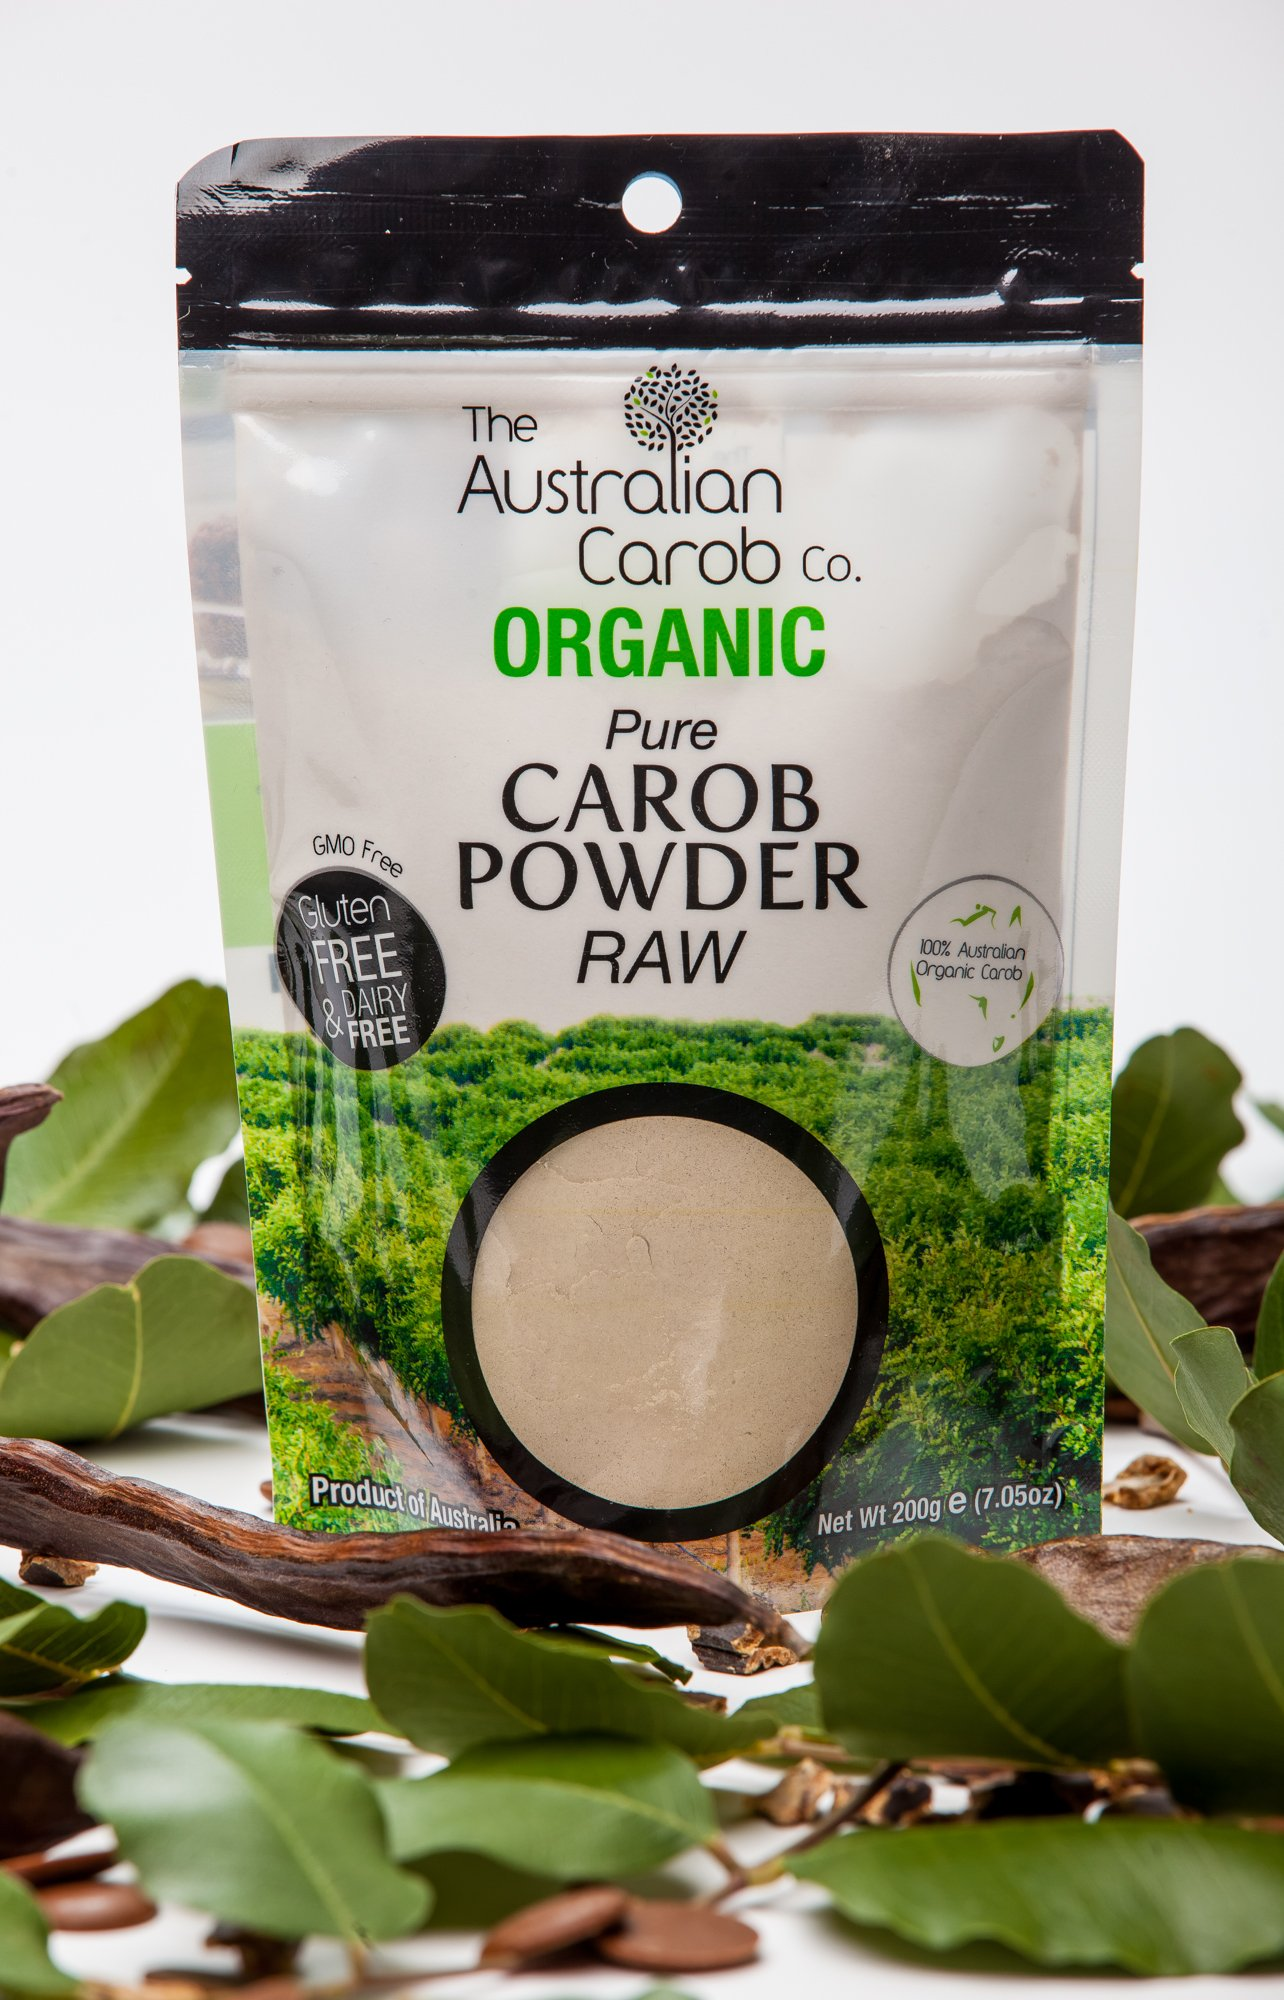 ORGANIC AUSTRALIAN CAROB CO. PREMIUM TRUE RAW CAROB POWDER, RE-SEALABLE, SUPERFOOD, PALEO, (Milled without Heat, off-white in color) NON-GMO, WORLD'S #1 BEST TASTING RAW CAROB, ORGANIC, CAROB, 7.05oz